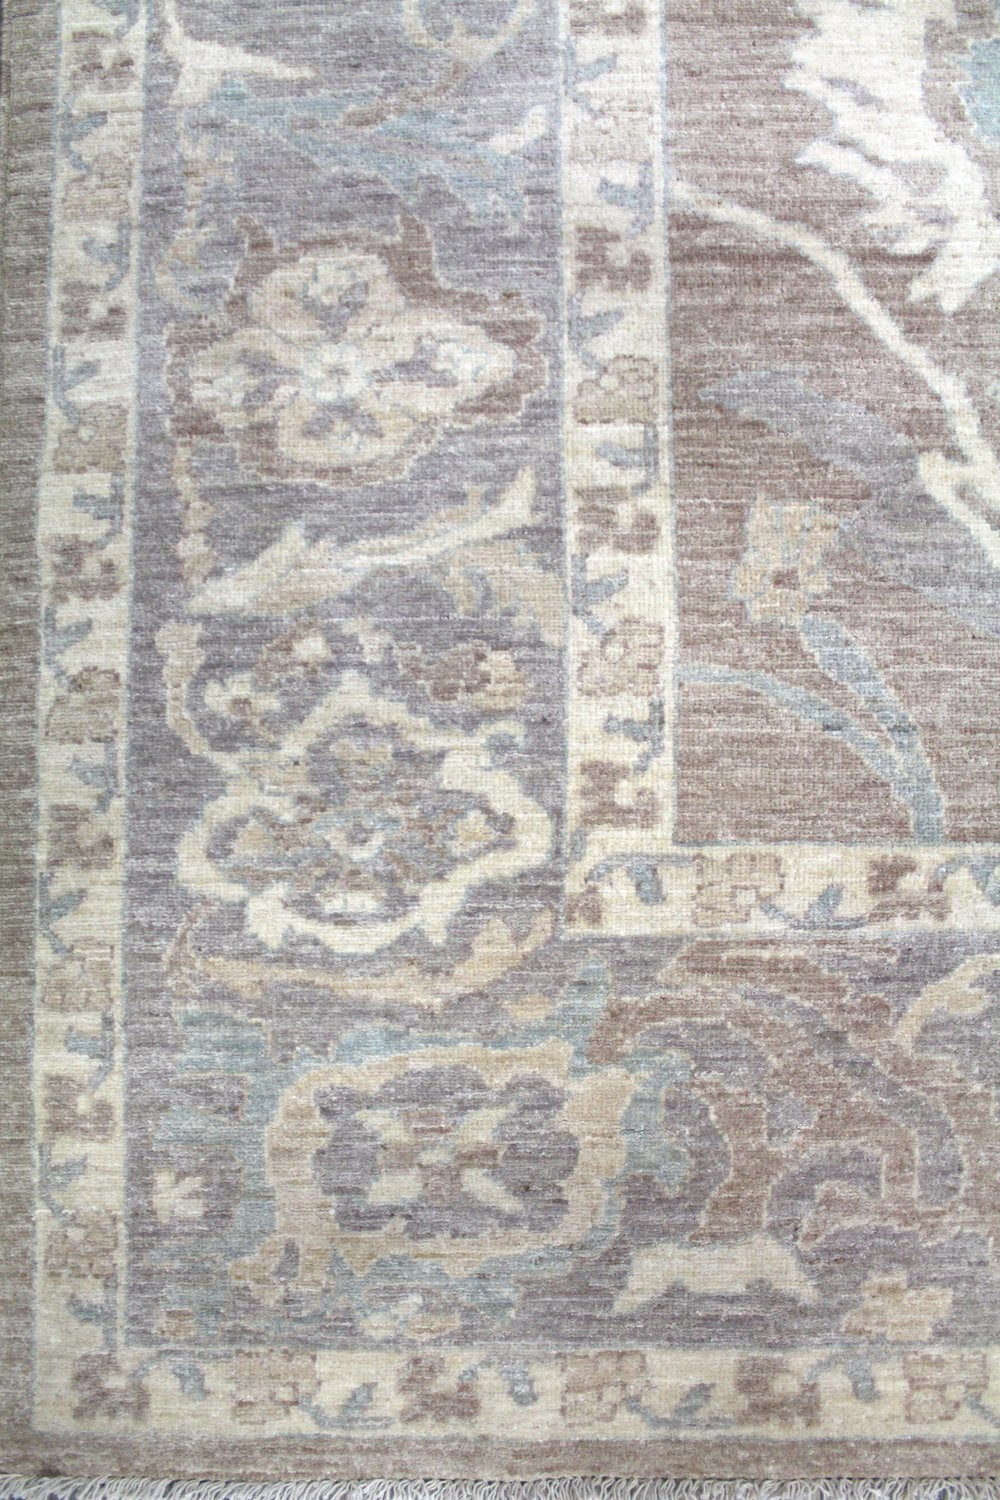 Sultanabad Handwoven Transitional Rug